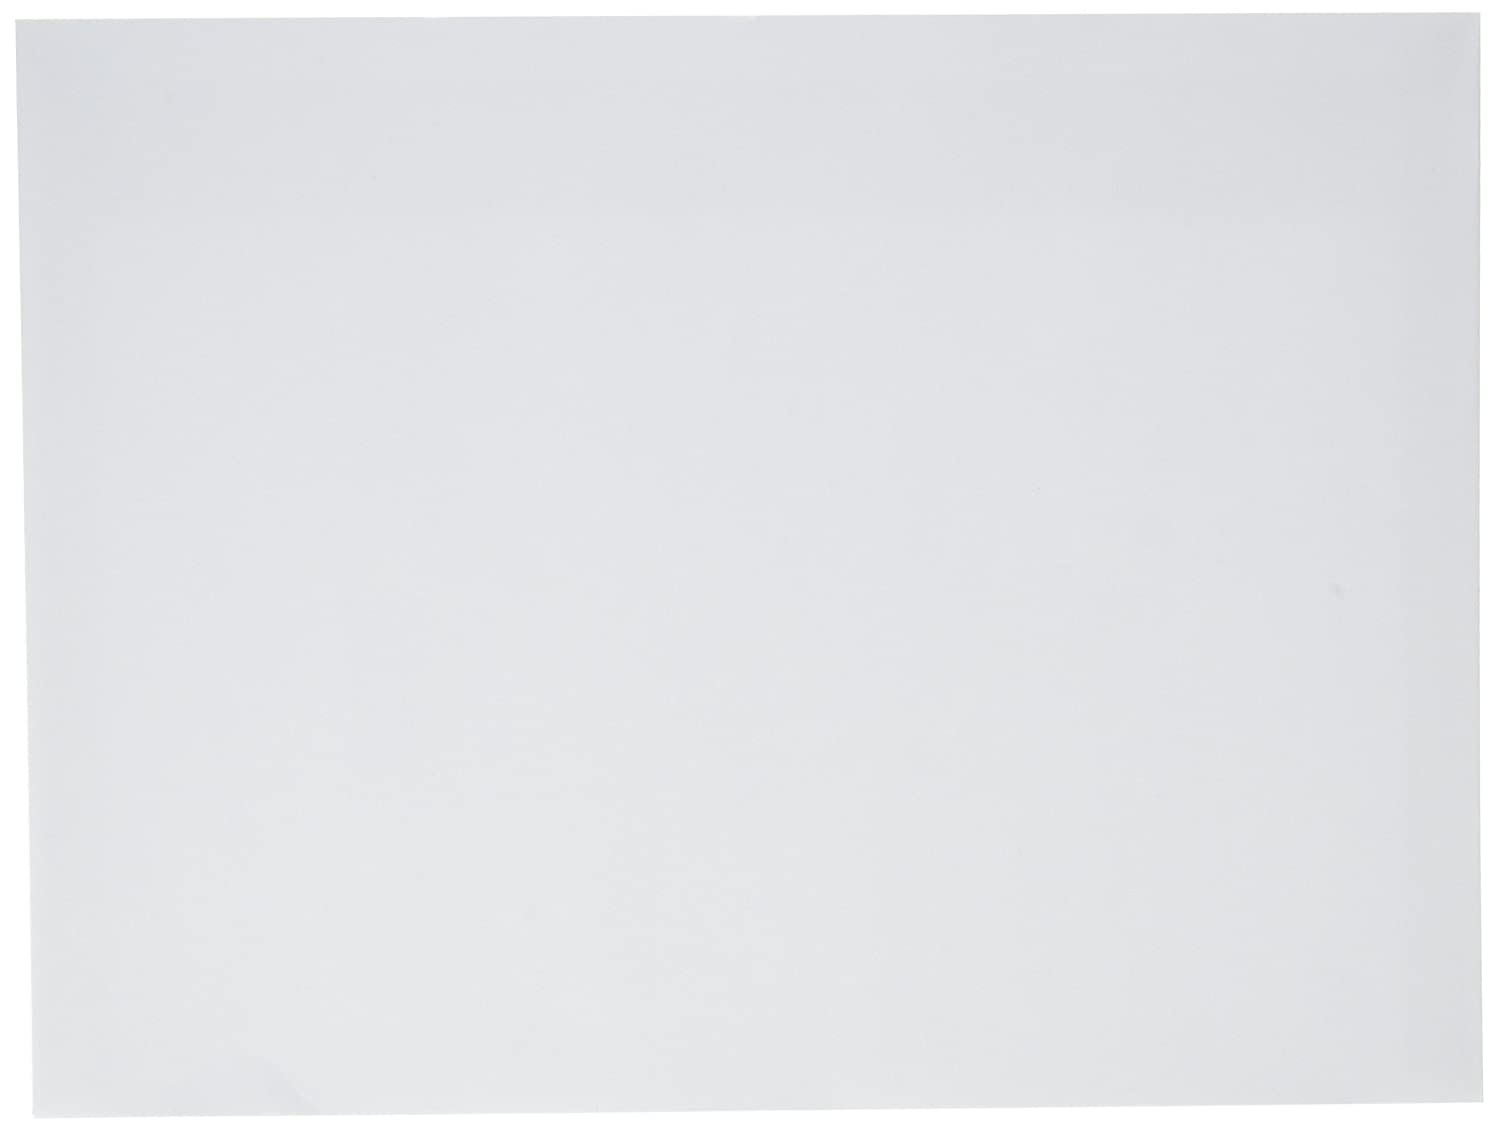 9x12 Envelopes (Bright White) - Open Side 9x12 Booklet Envelopes - Pack of 55 White Envelopes 9x12 28lb Paper - Check O Matic Business Envelopes COM367